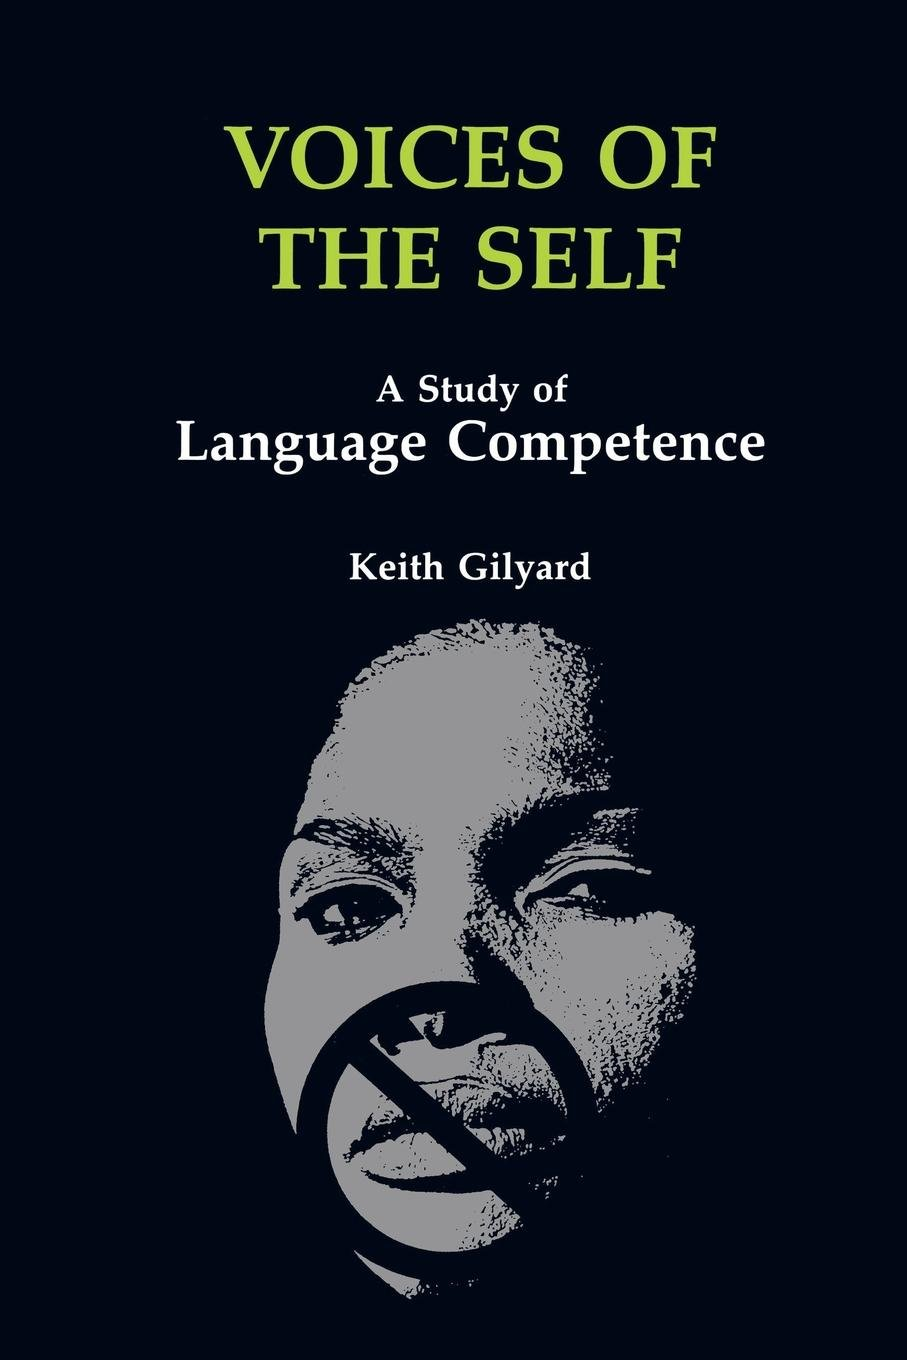 Voices of the Self: A Study of Language Competence (African American Life Series) by Brand: Wayne State University Press